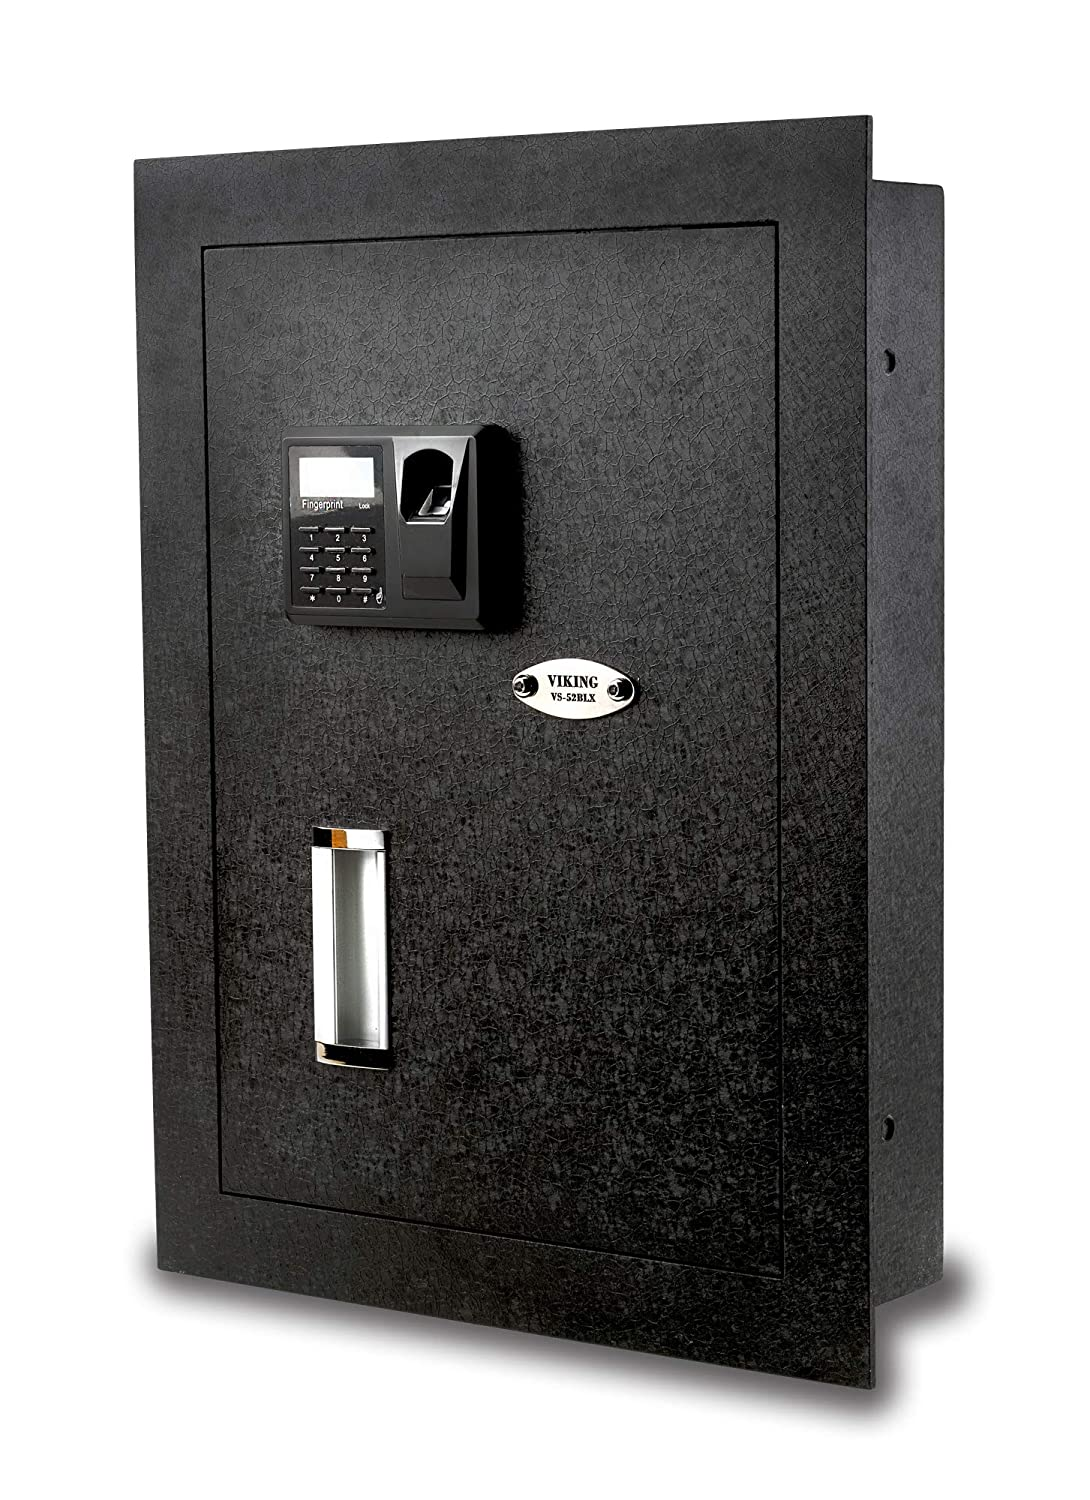 3. Viking Security Safe VS-52BLX Biometric Fingerprint Hidden Wall Safe